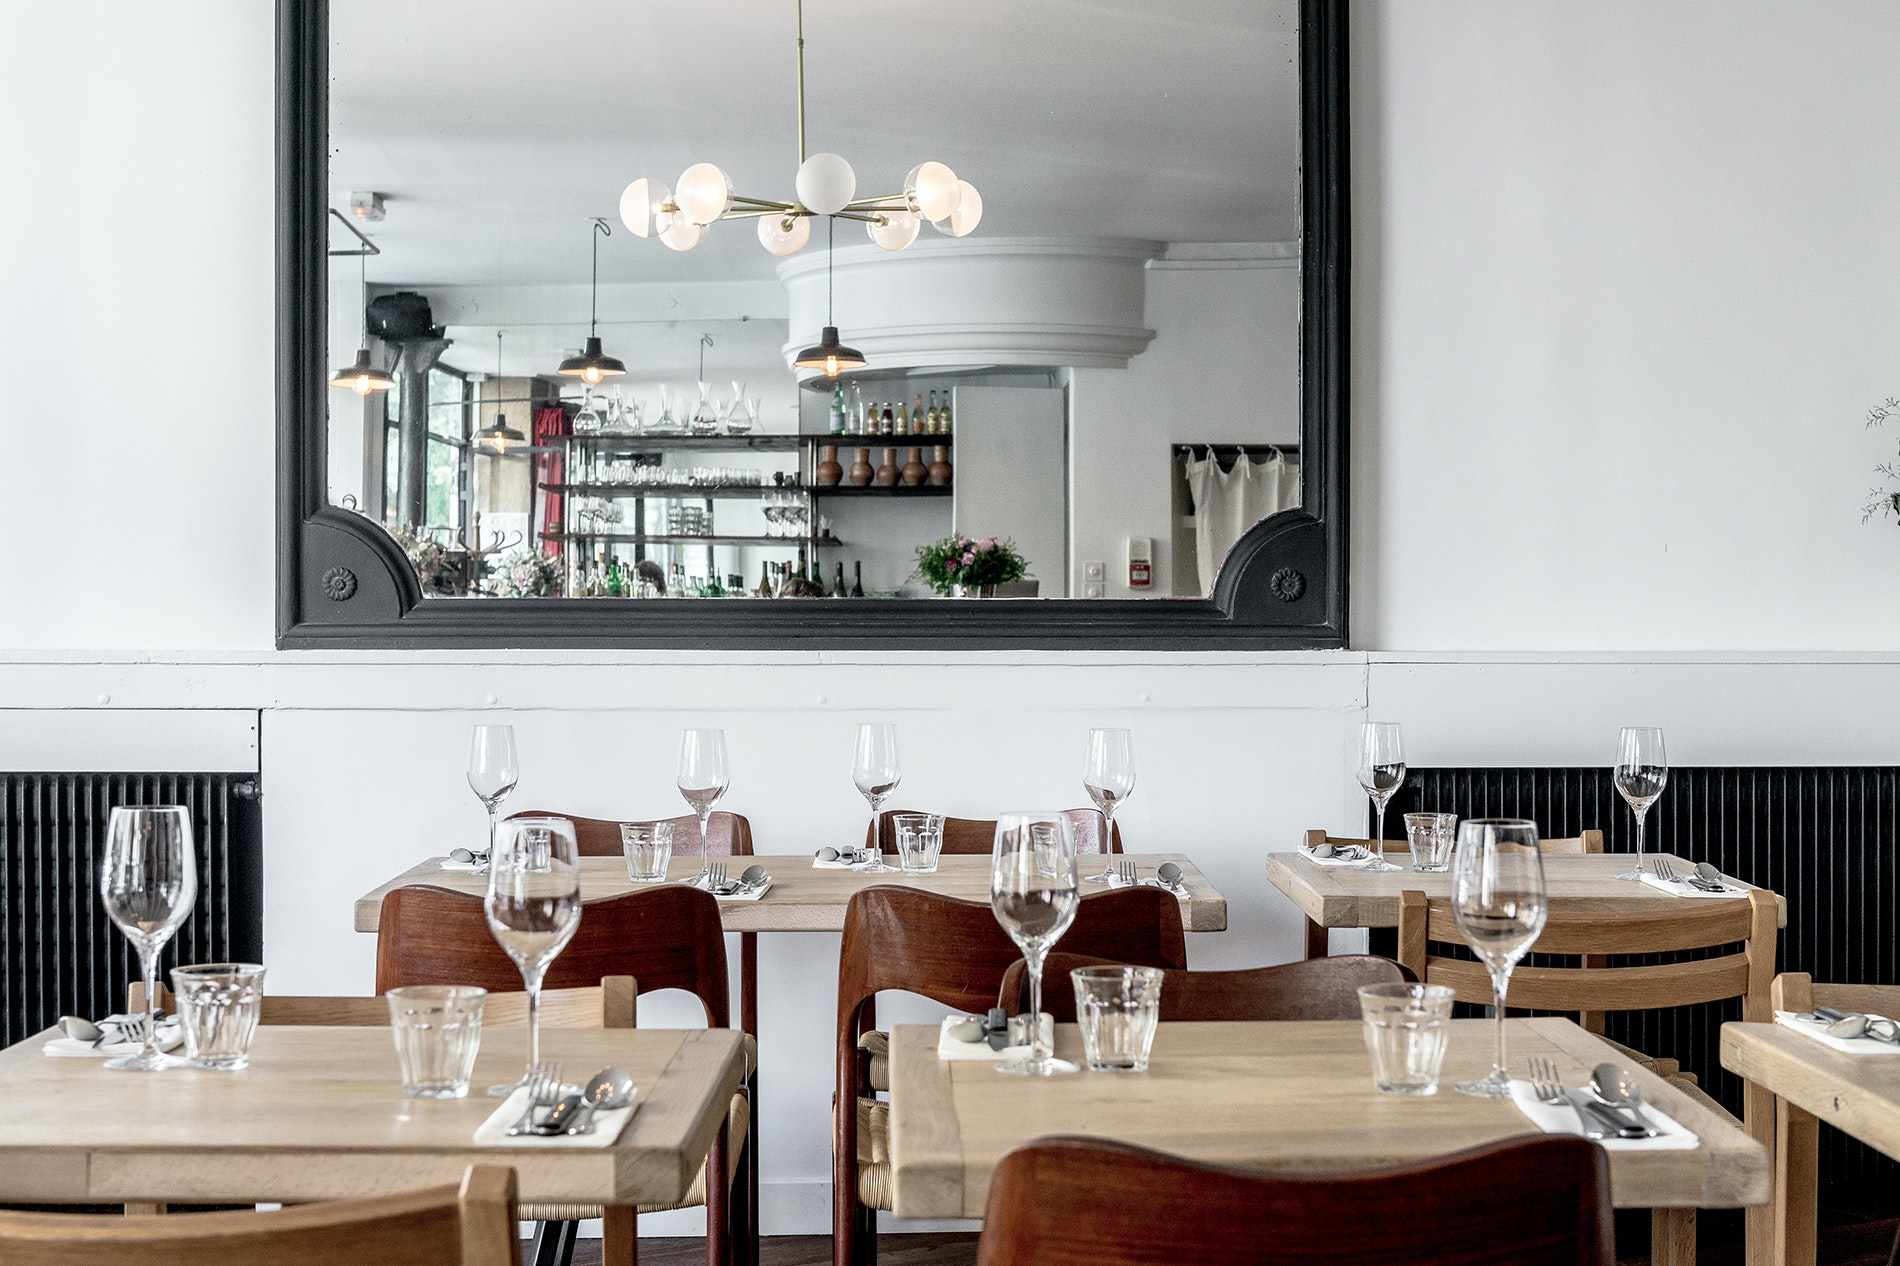 Robert offers French classics with Australian and British touches.